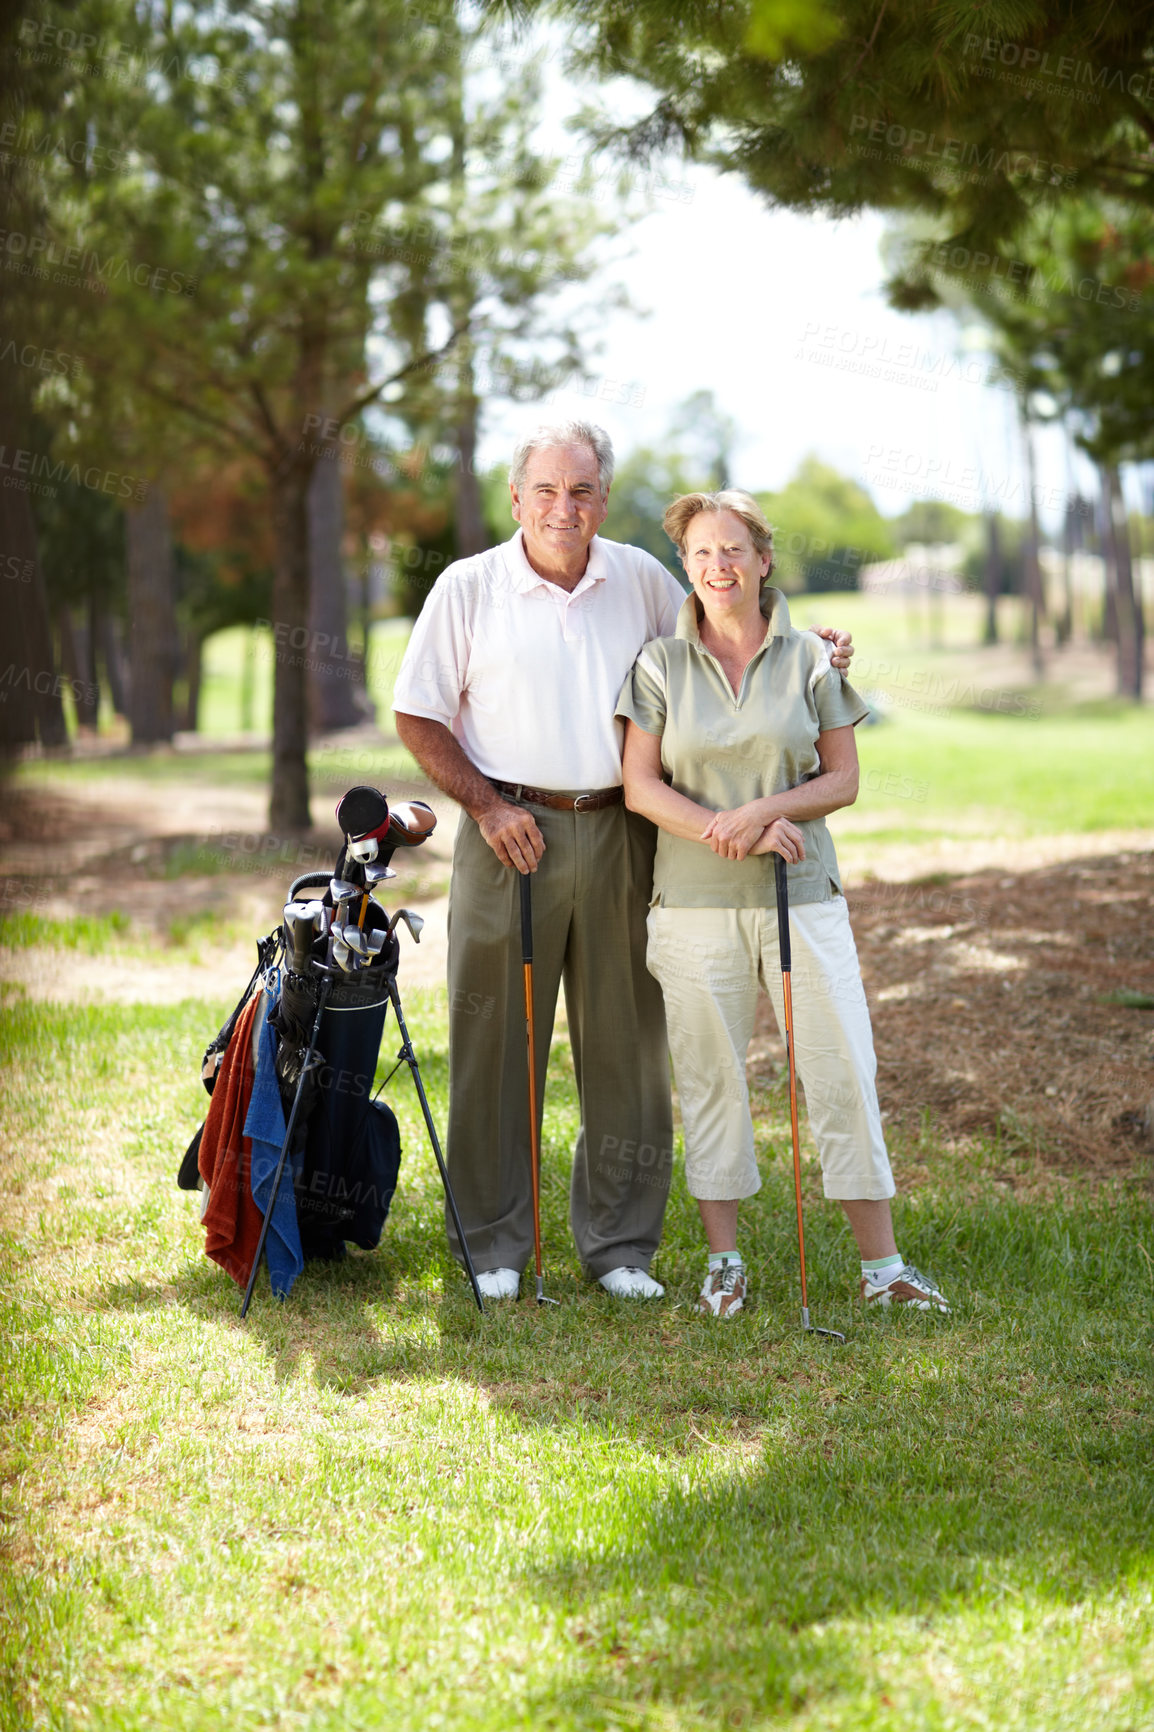 Buy stock photo Portrait of a mature, happy couple standing together smiling on a golf course